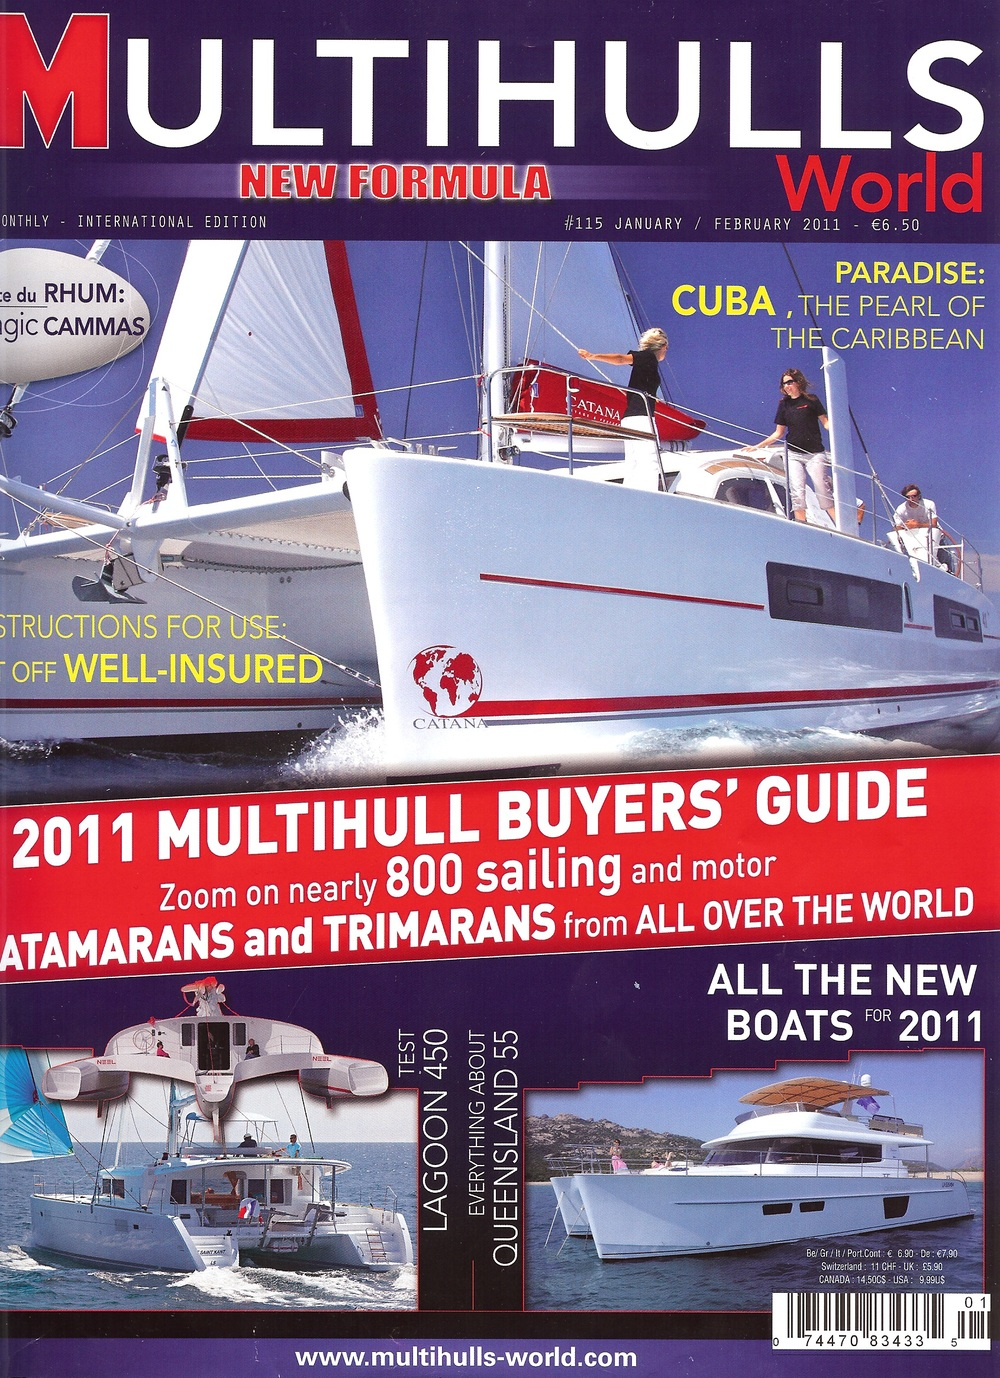 NFN_Multihulls_Cover.jpg